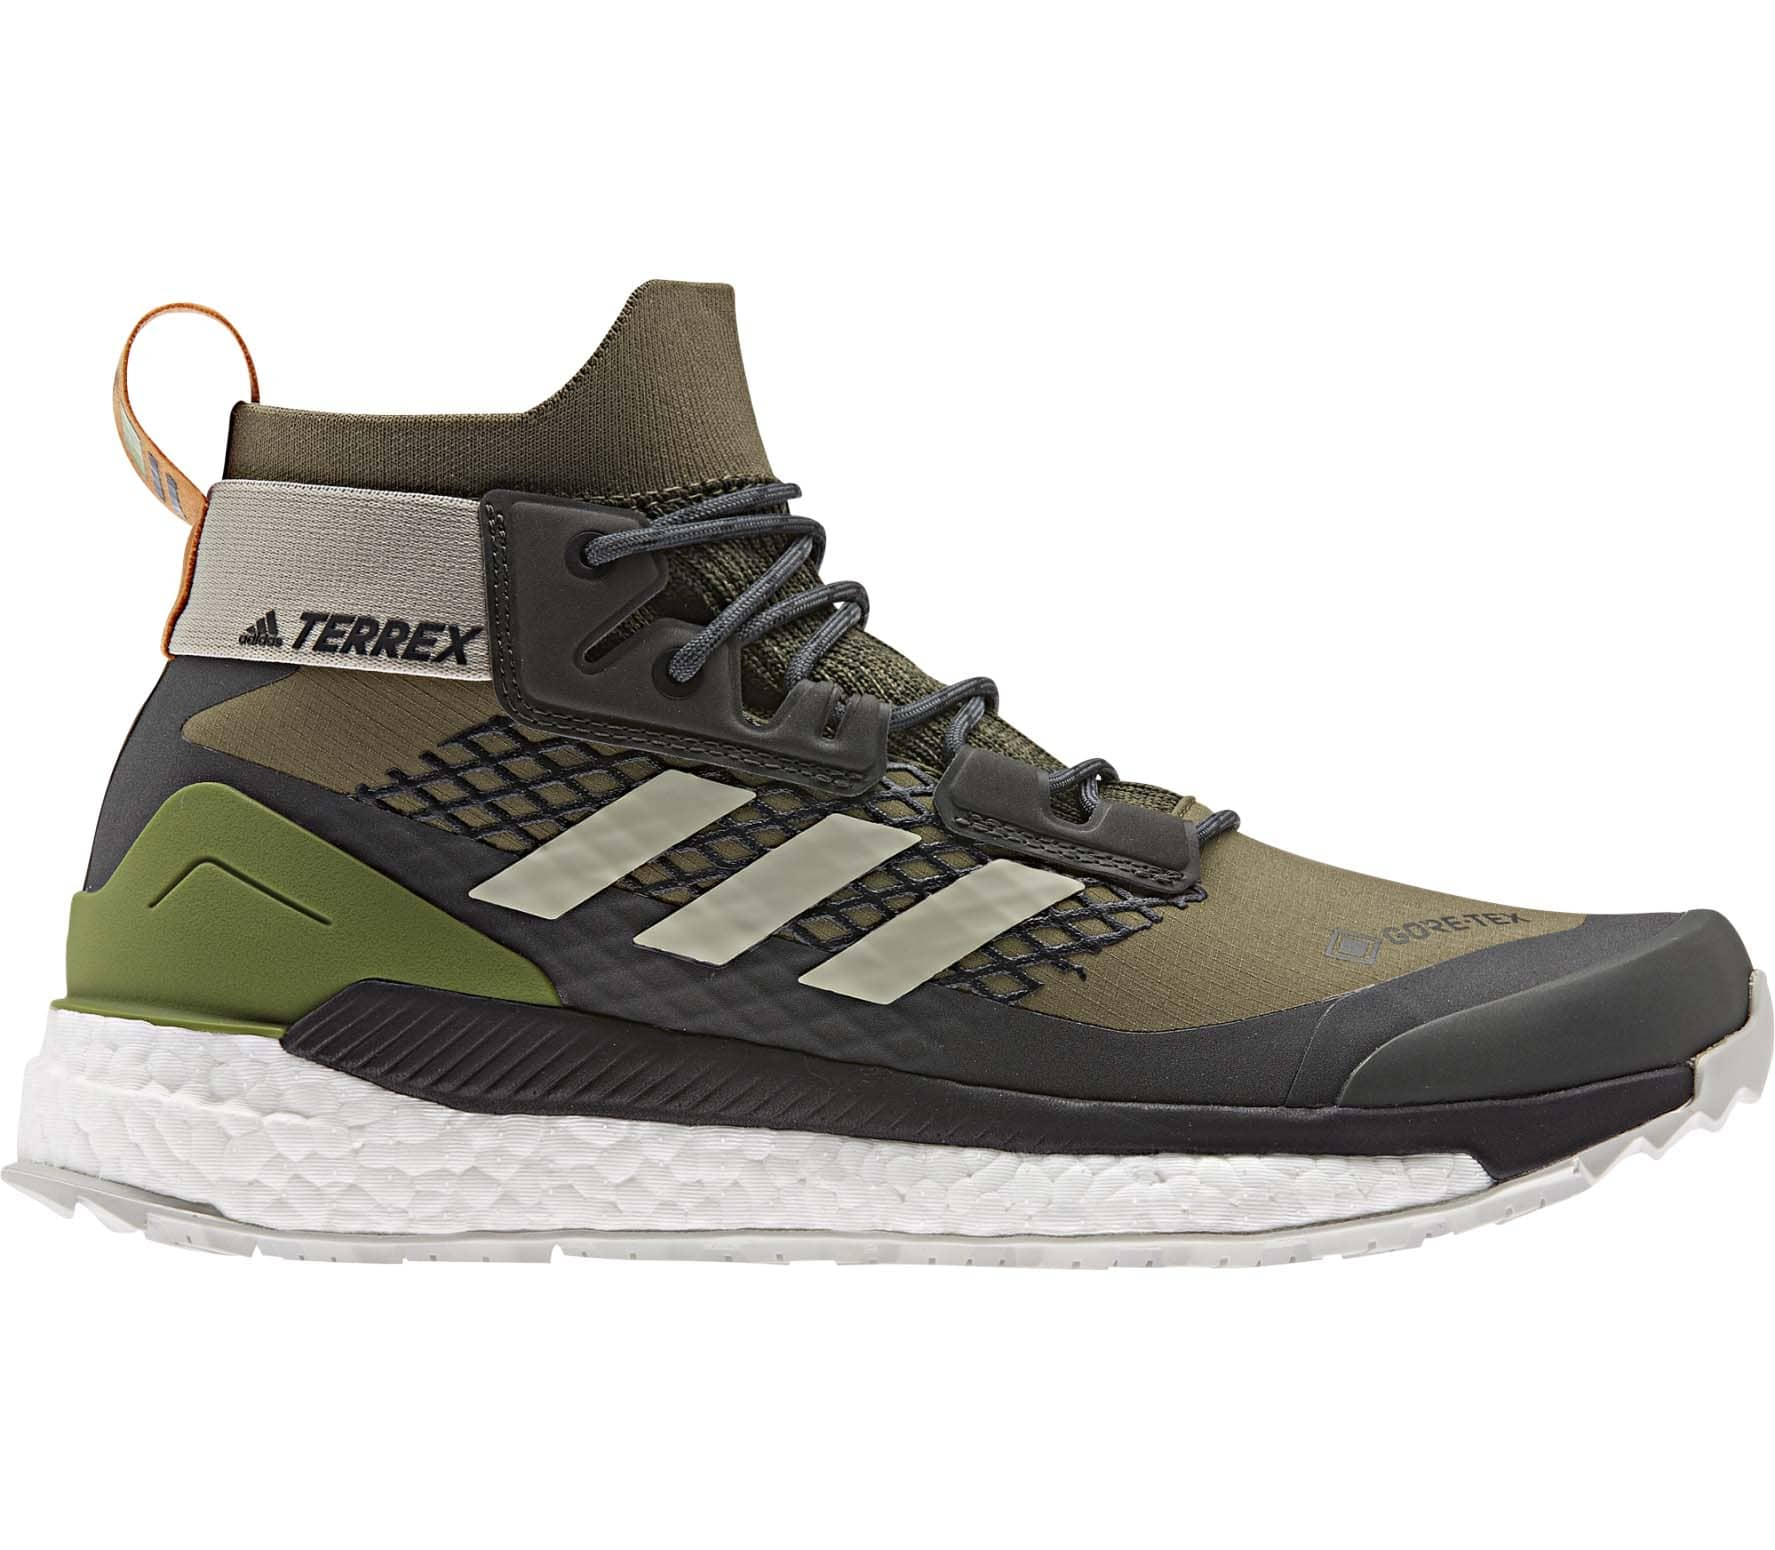 Adidas Outdoor Shoes Mens Lowest Prices Adidas Terrex